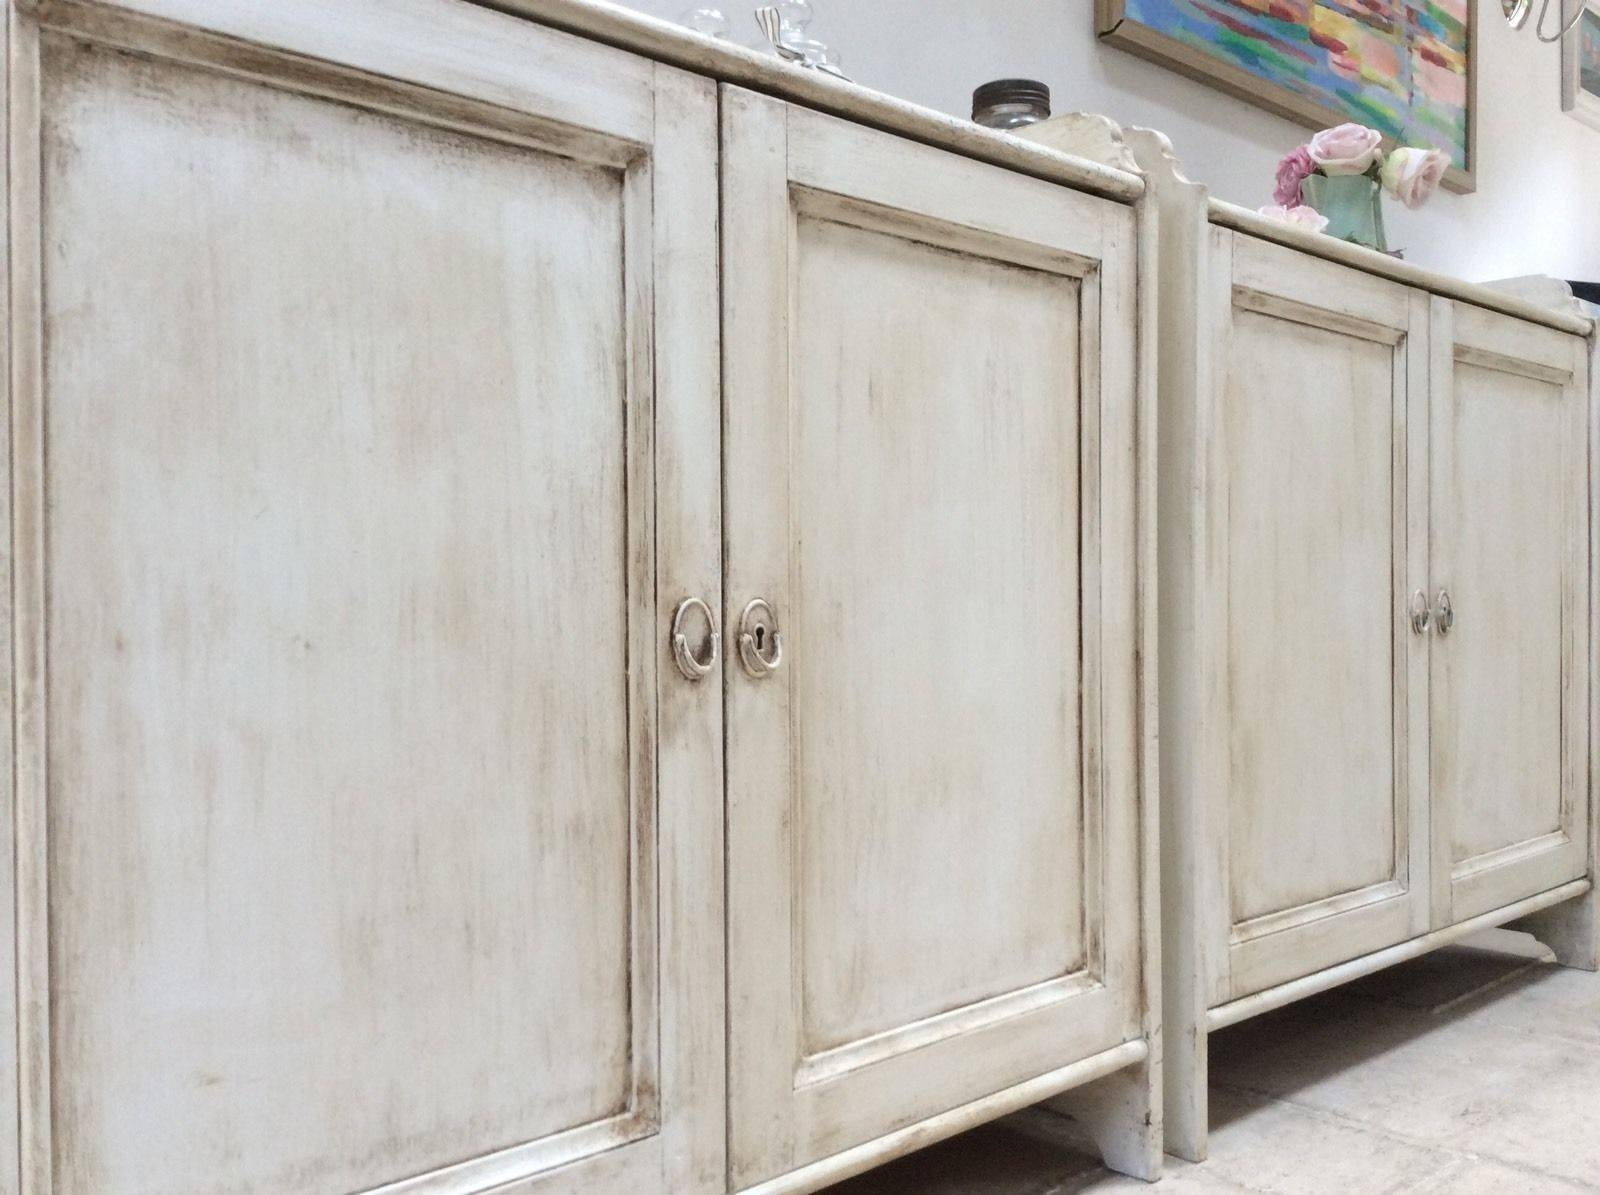 Of Pine Painted Cream Sideboard Freestanding Kitchen Unit Cupboard throughout Free Standing Kitchen Sideboards (Image 22 of 30)